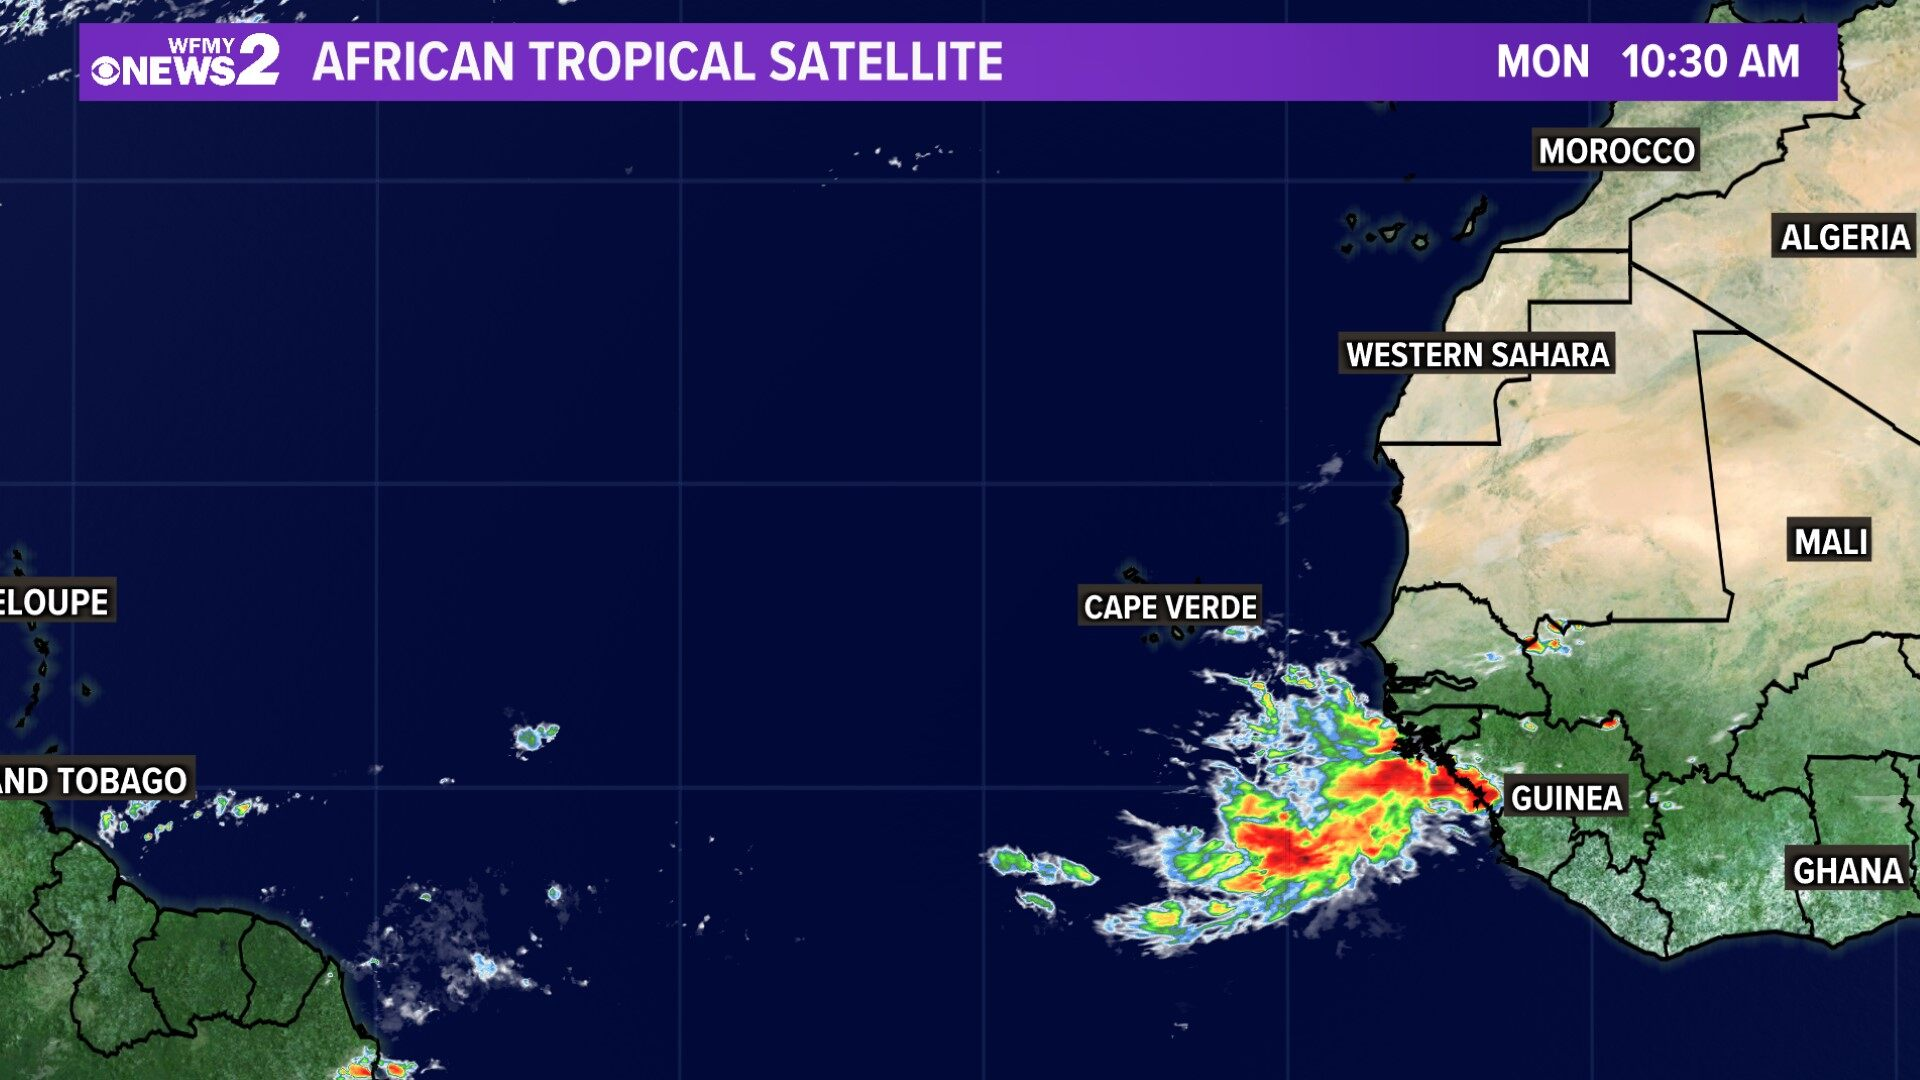 Tropical Satellite African Coast